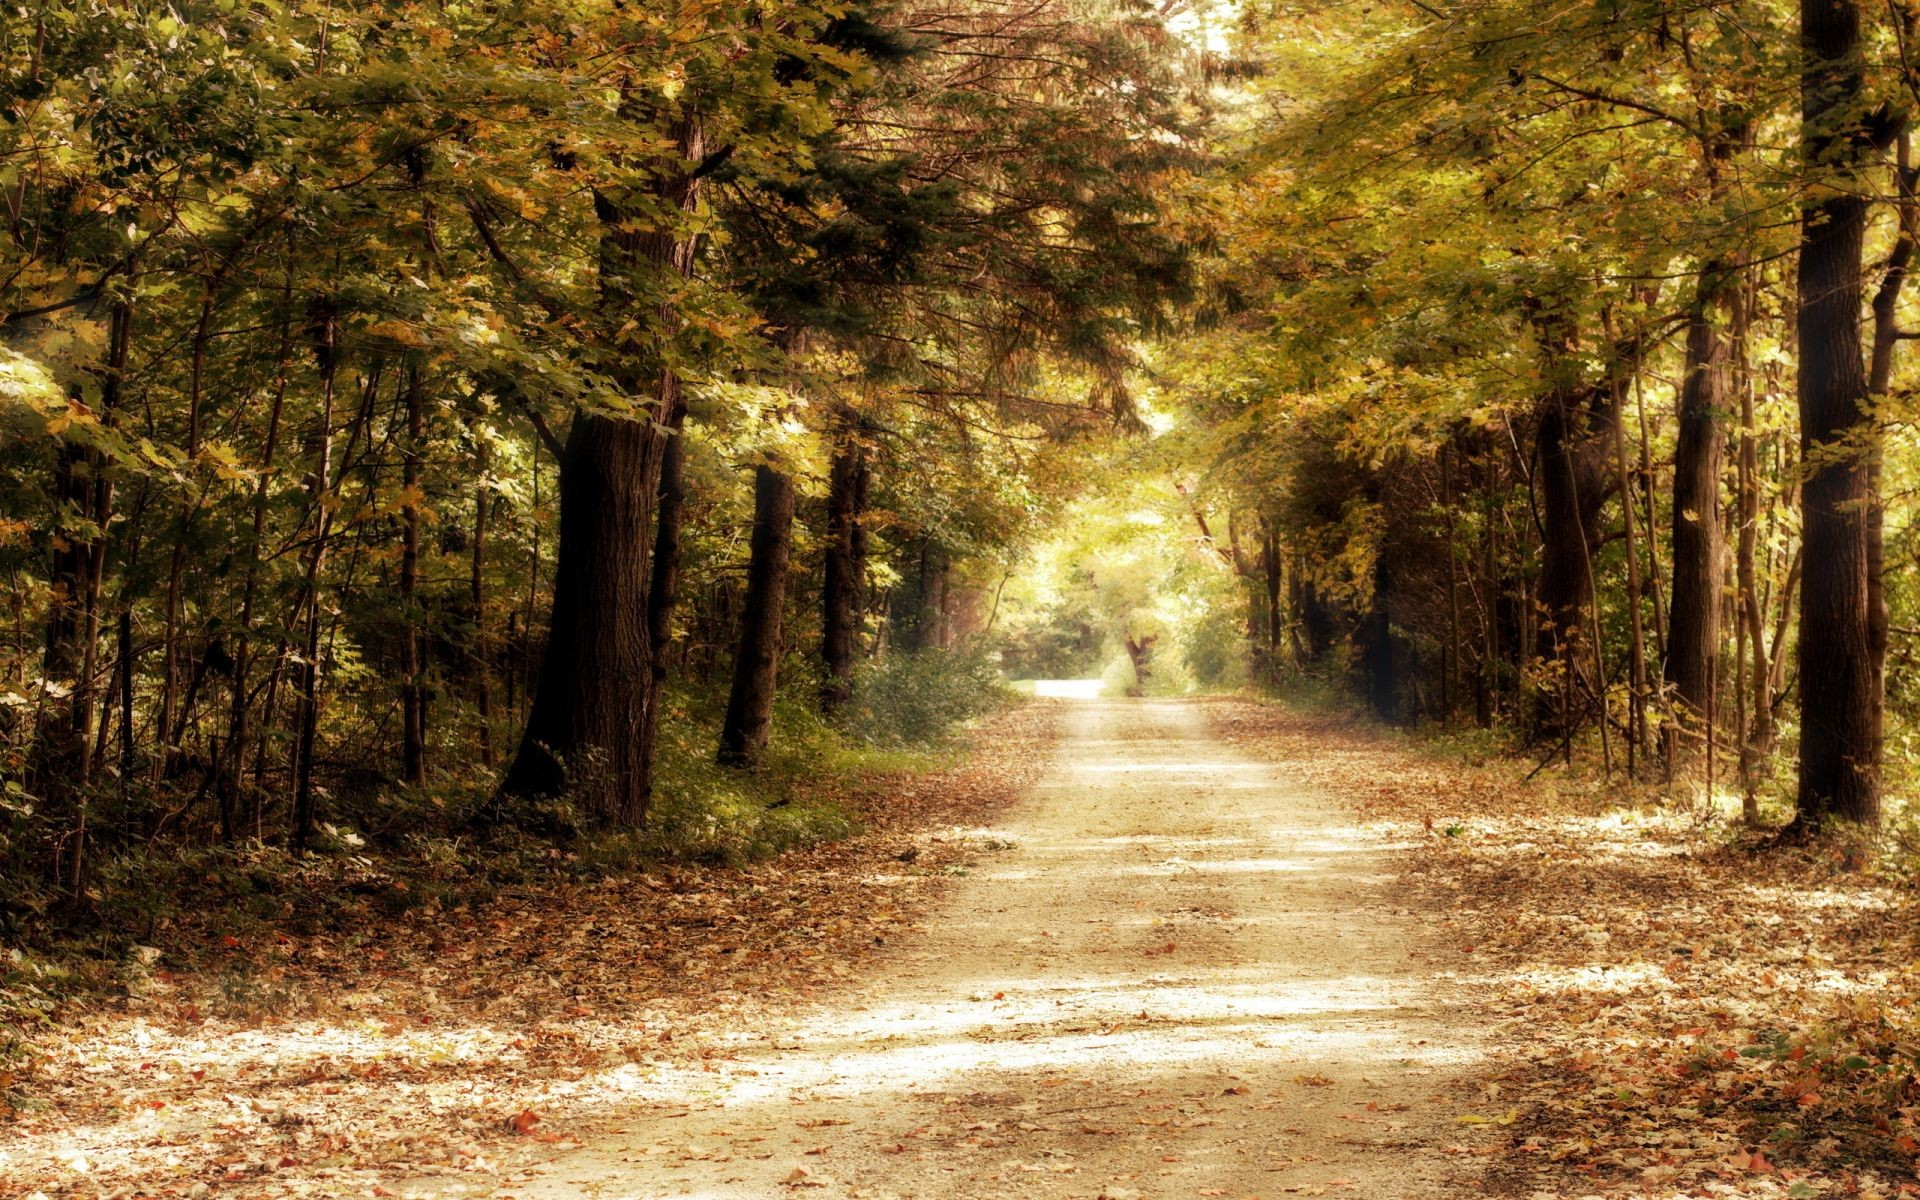 Trees Nature Forest Road Android Wallpapers For Free